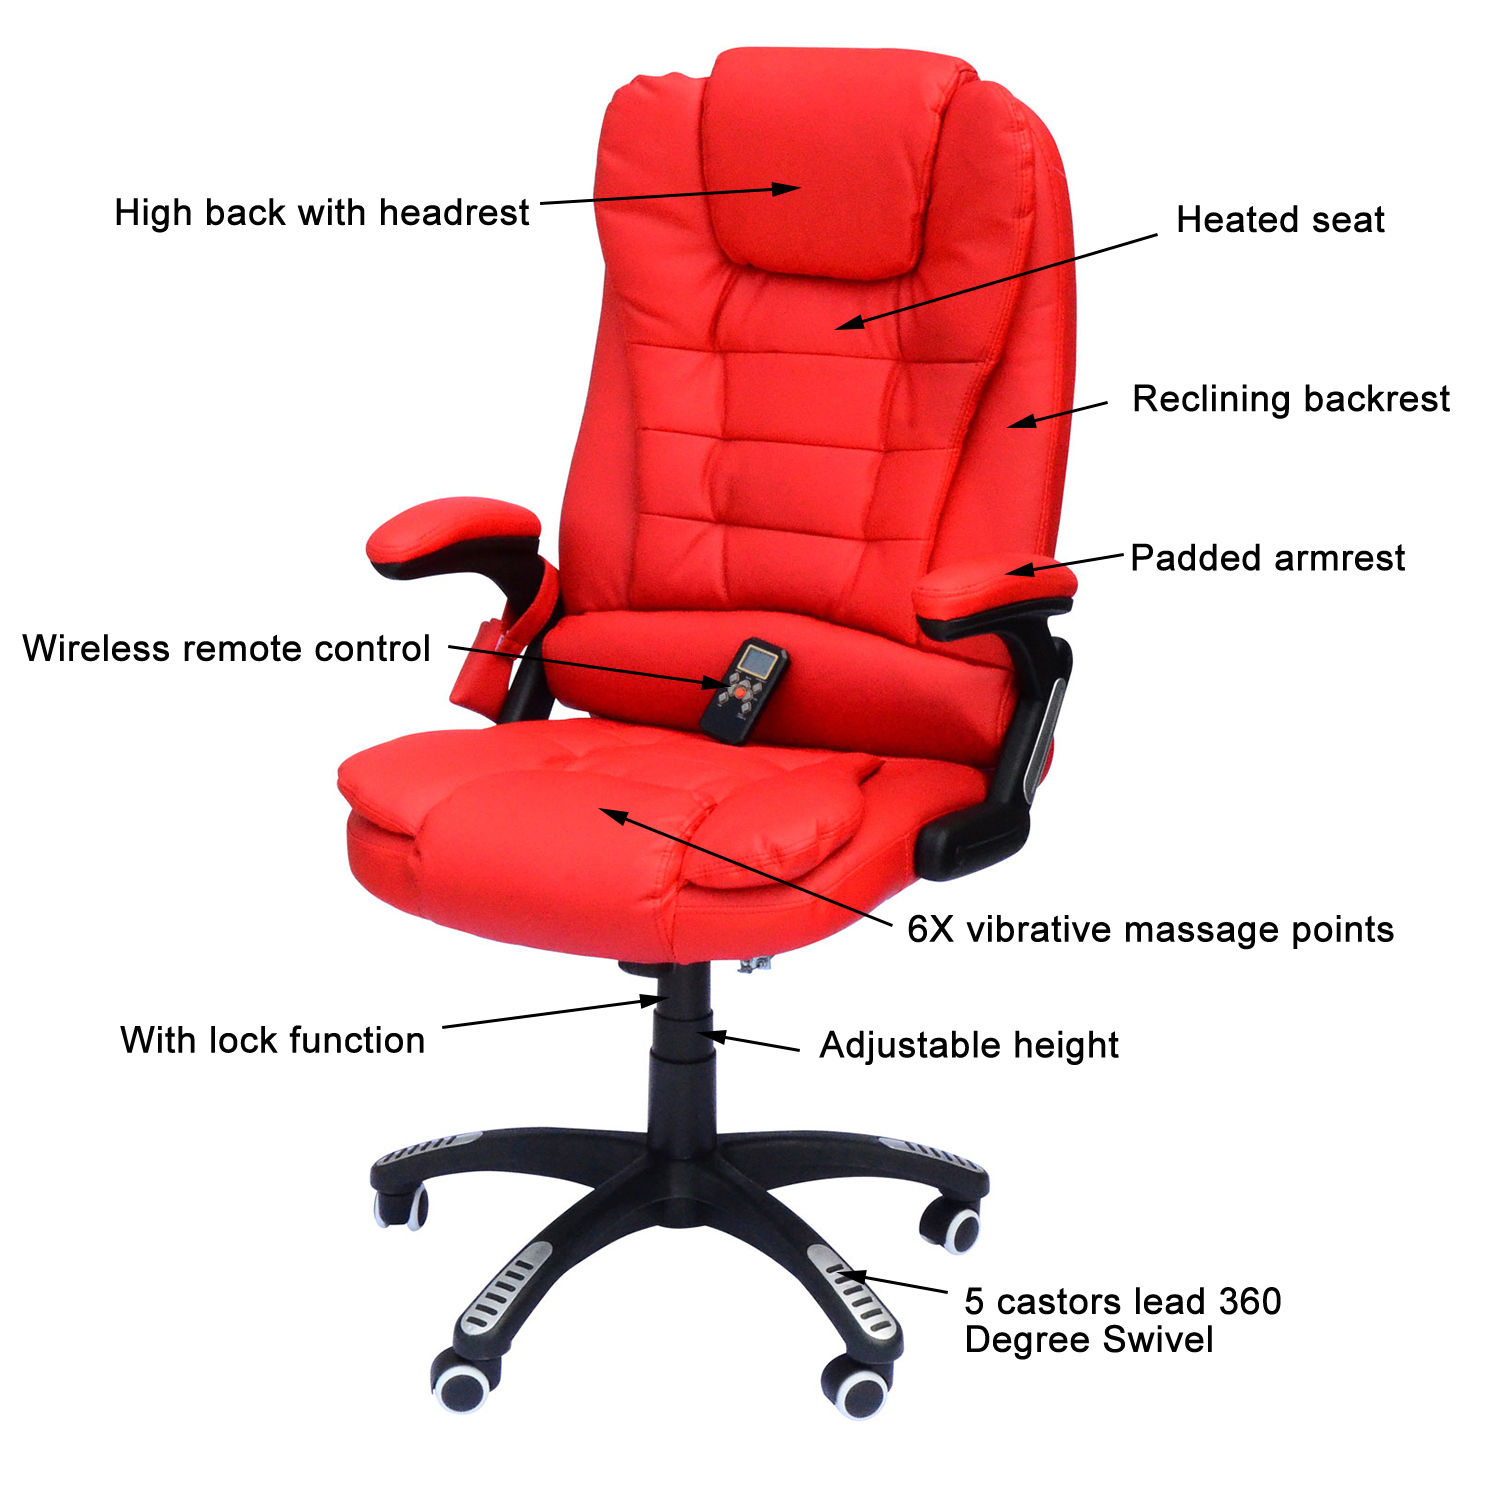 Heated Massage Office Chair Executive Ergonomic Heated Vibrating Computer Desk Office